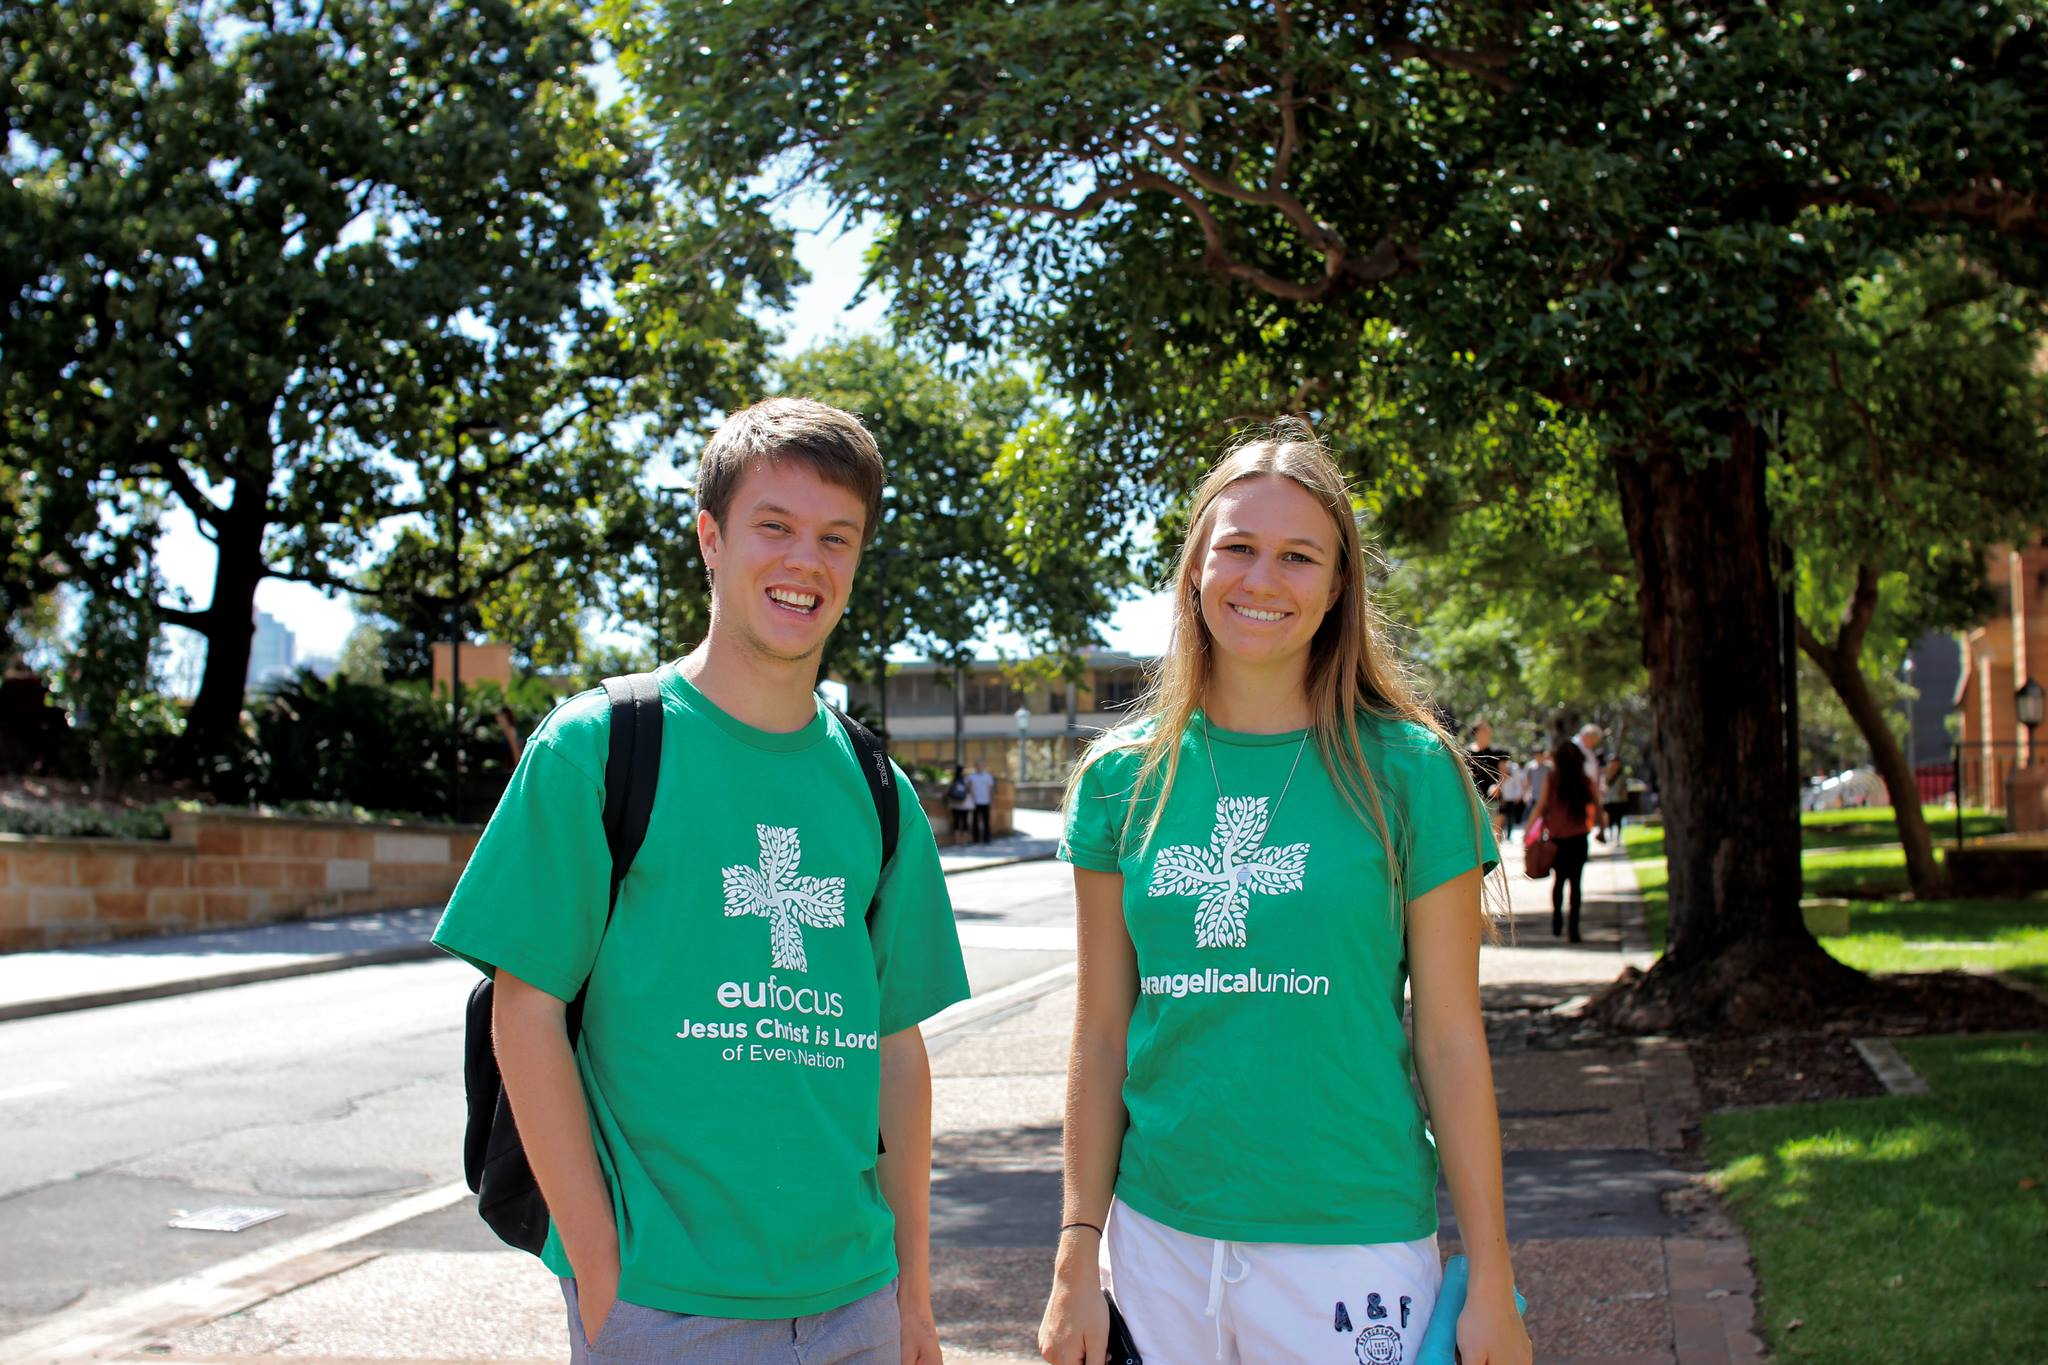 Two students from Sydney University's Evangelical Union